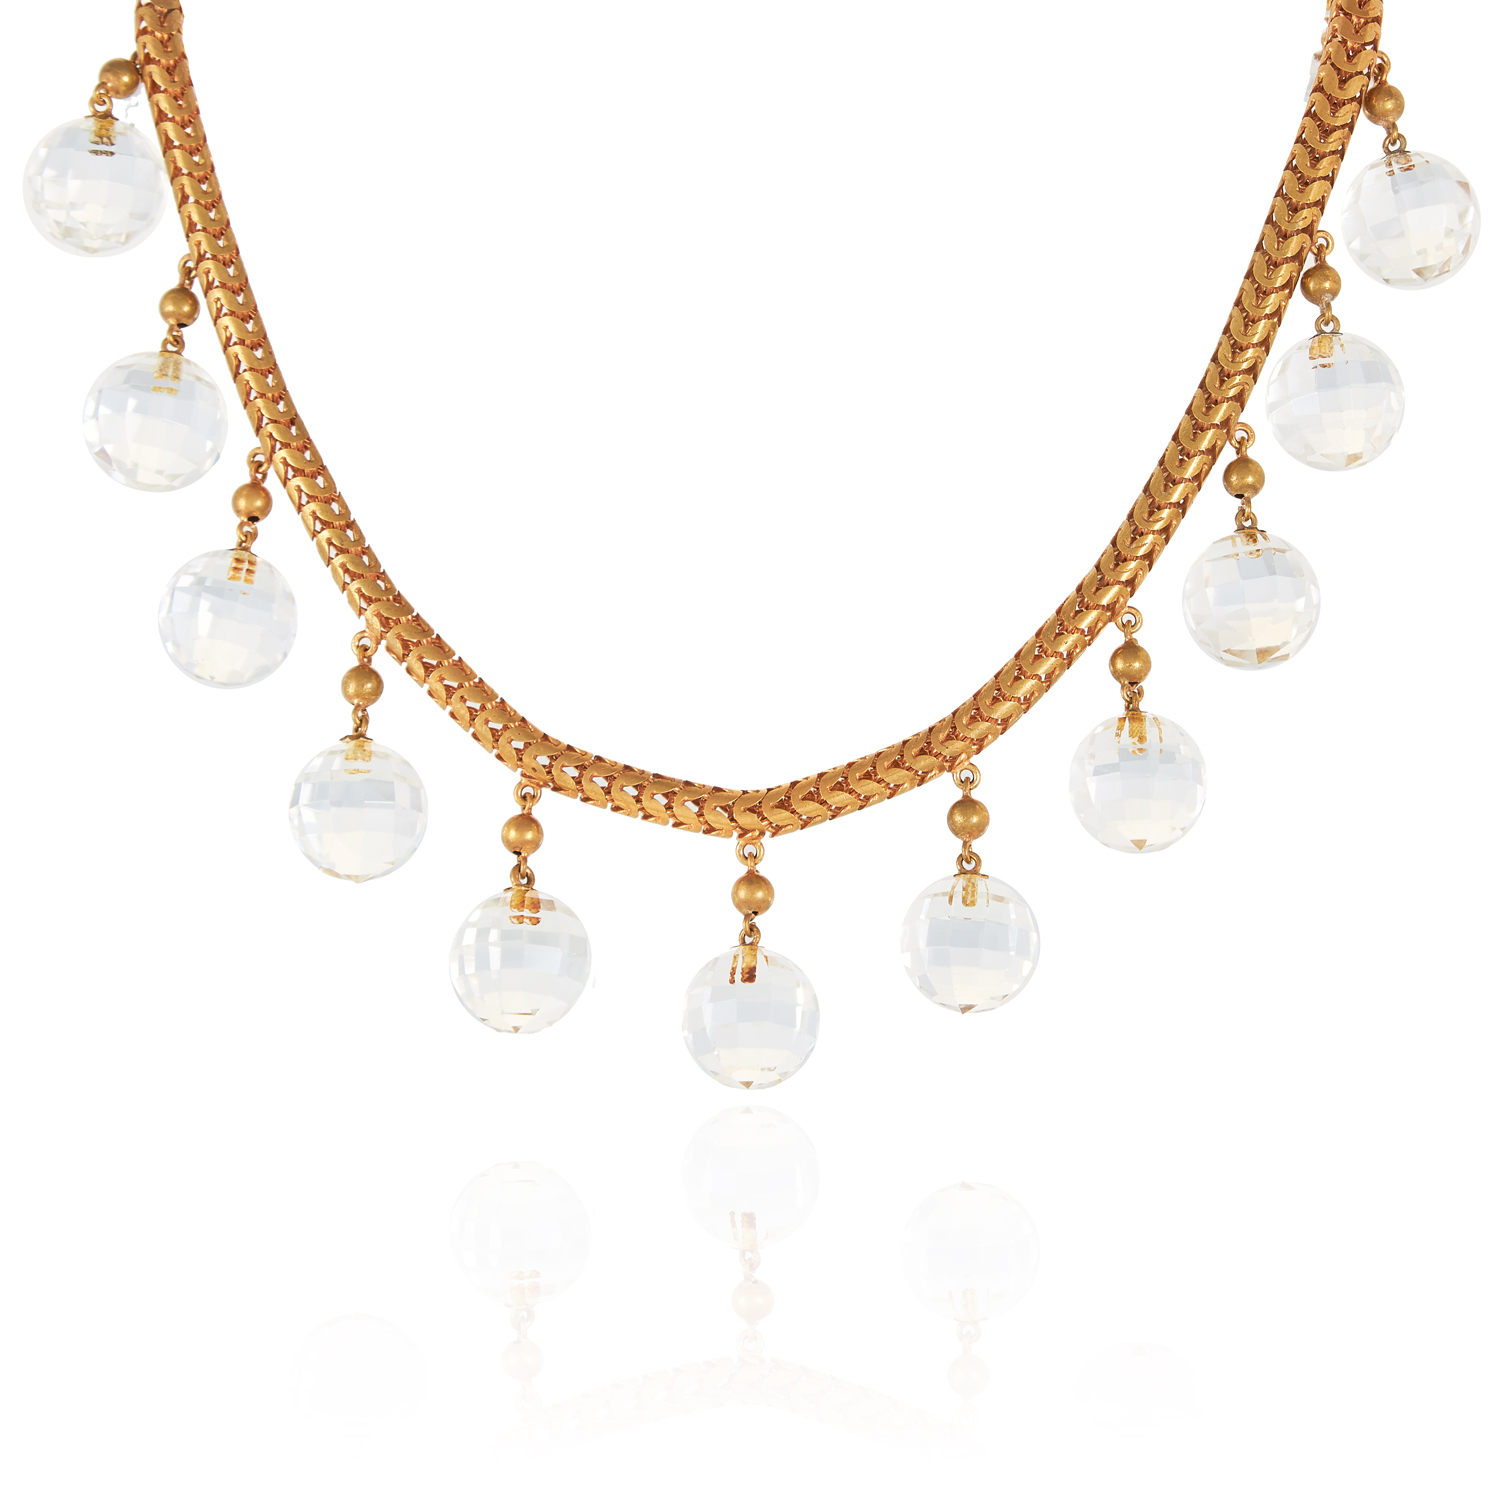 Los 47 - AN ANTIQUE GEORGIAN ROCK CRYSTAL BEAD NECKLACE, EARLY 19TH CENTURY set with eighteen faceted rock